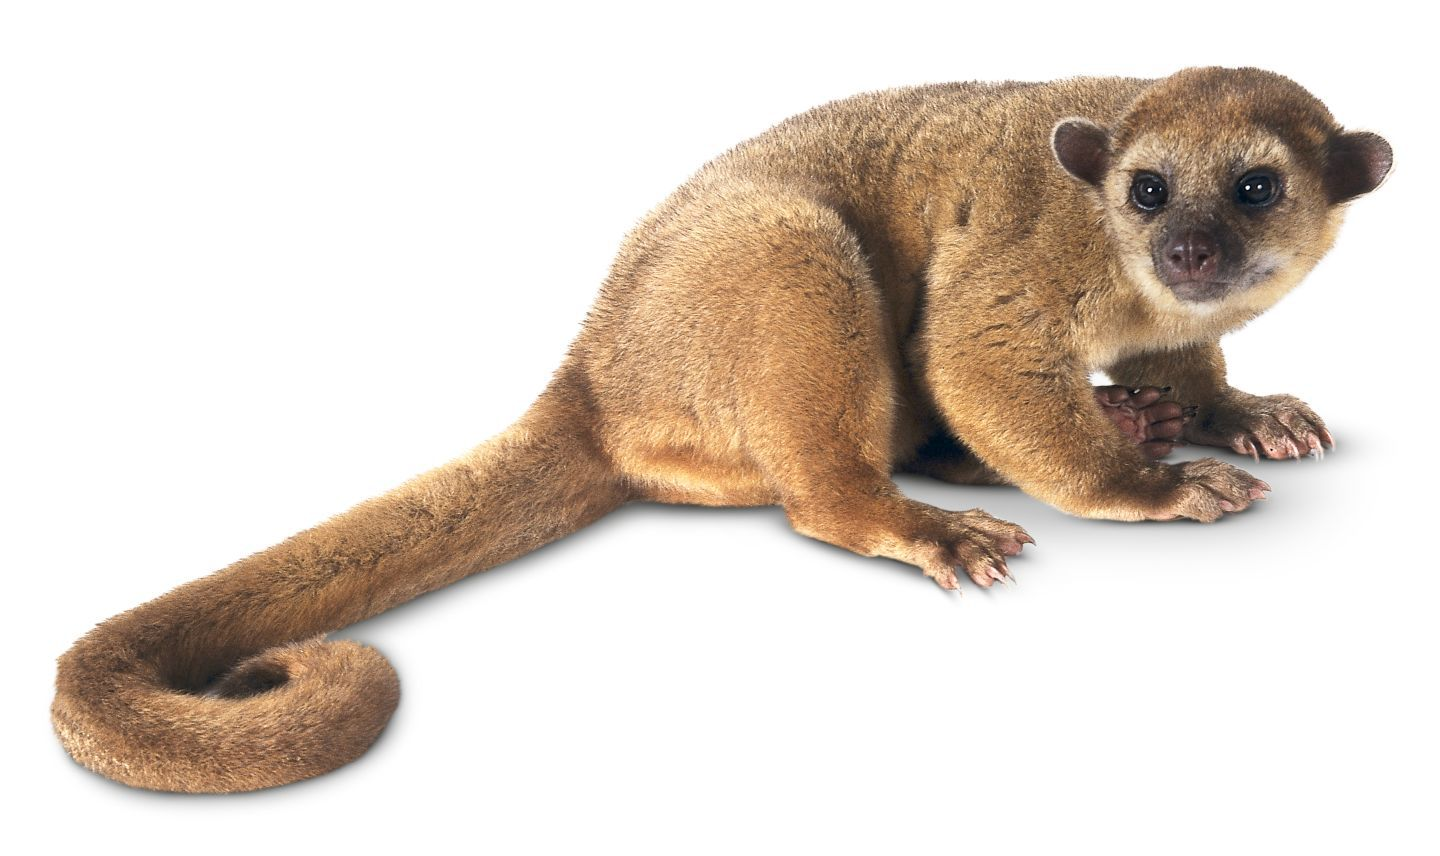 Kinkajou is a type of small mammal